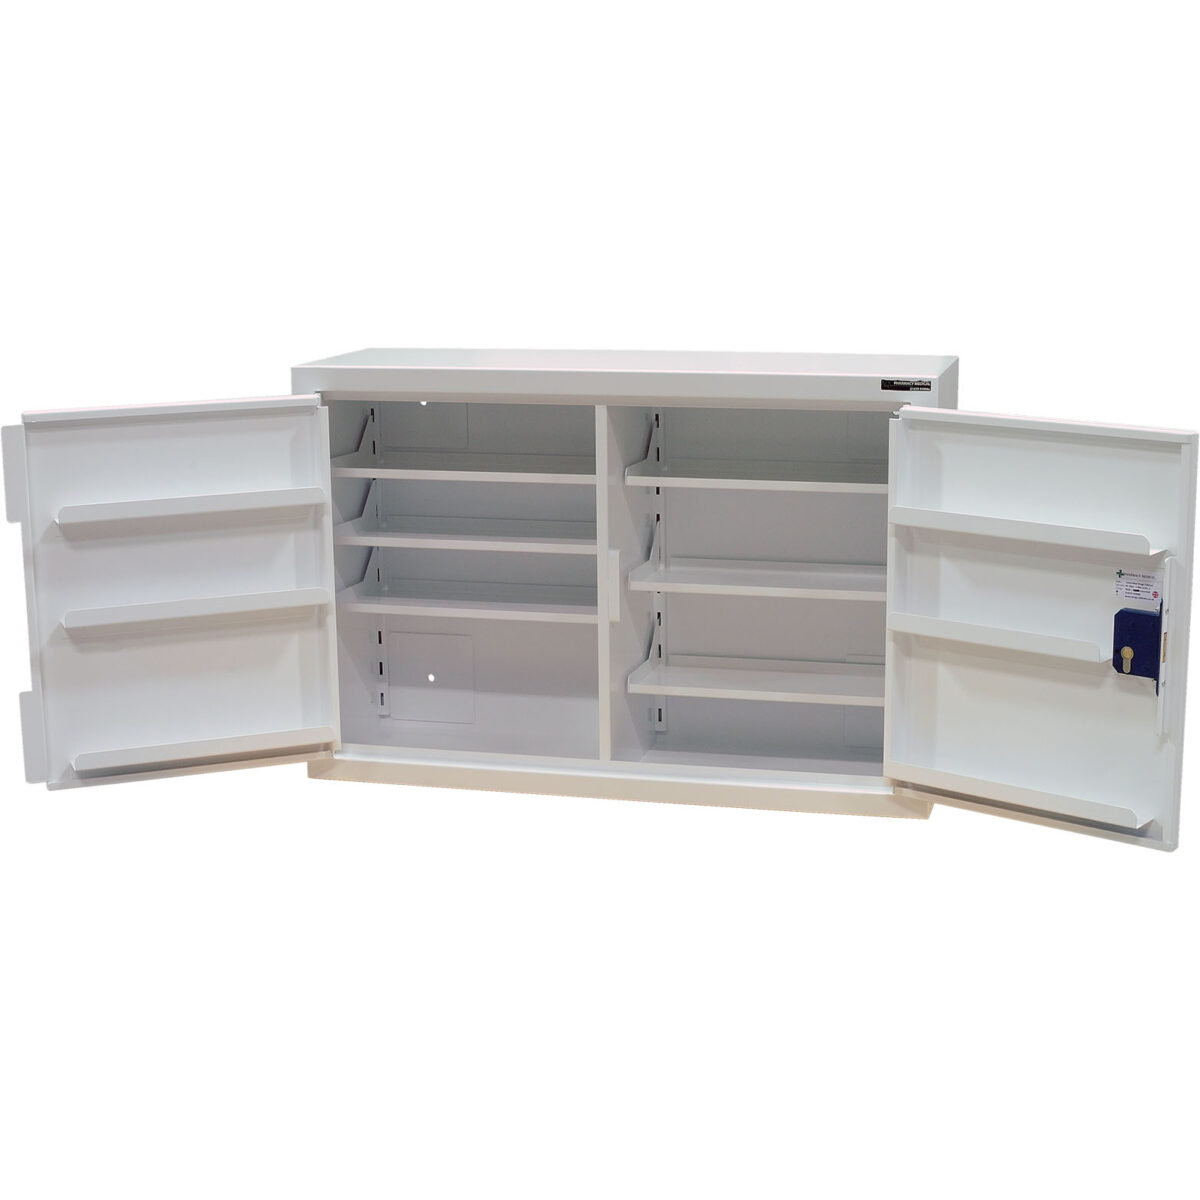 HECDC203 controlled drugs cabinet